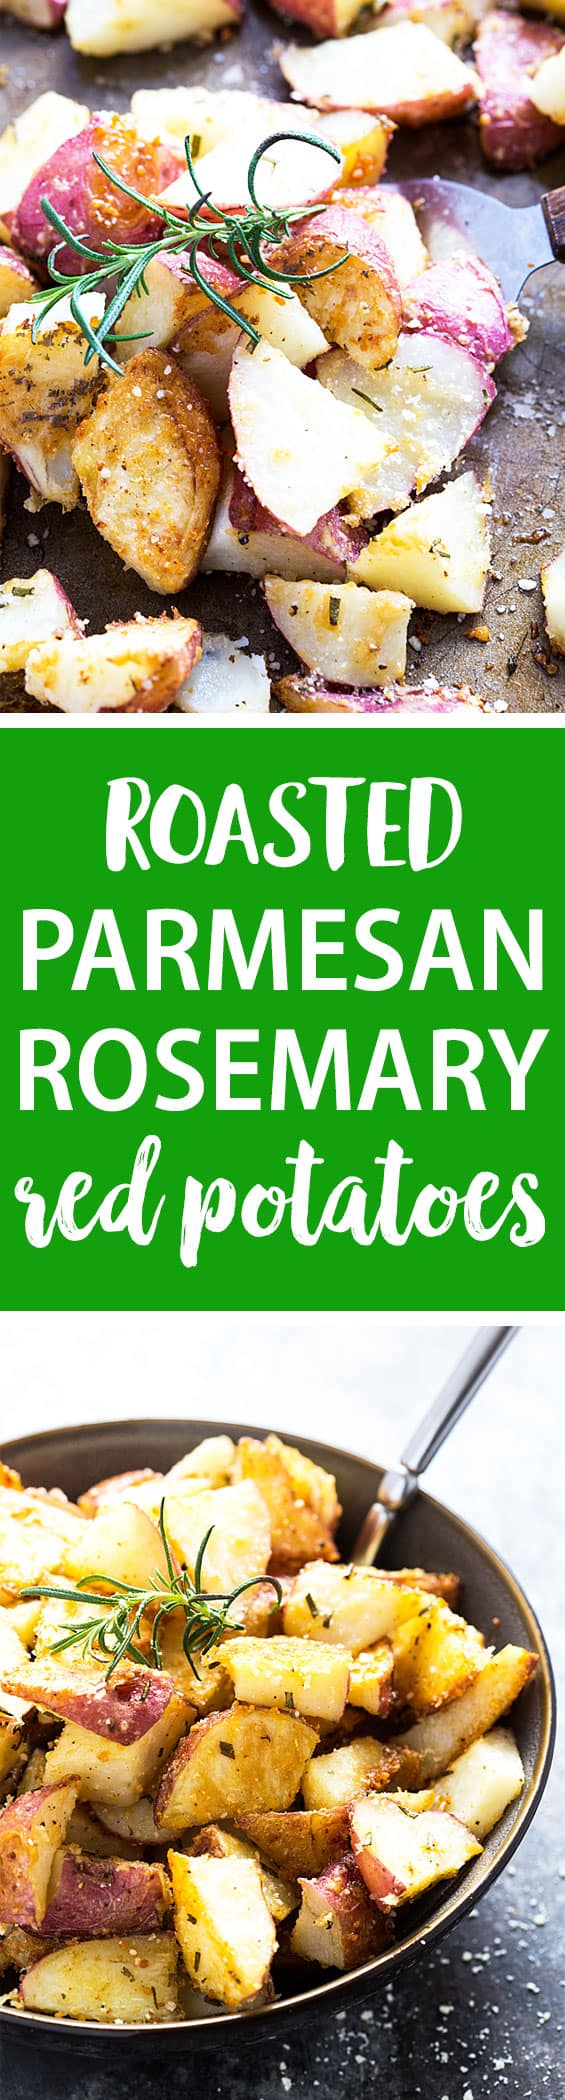 A two image vertical collage of roasted Parmesan rosemary potatoes with overlay text.